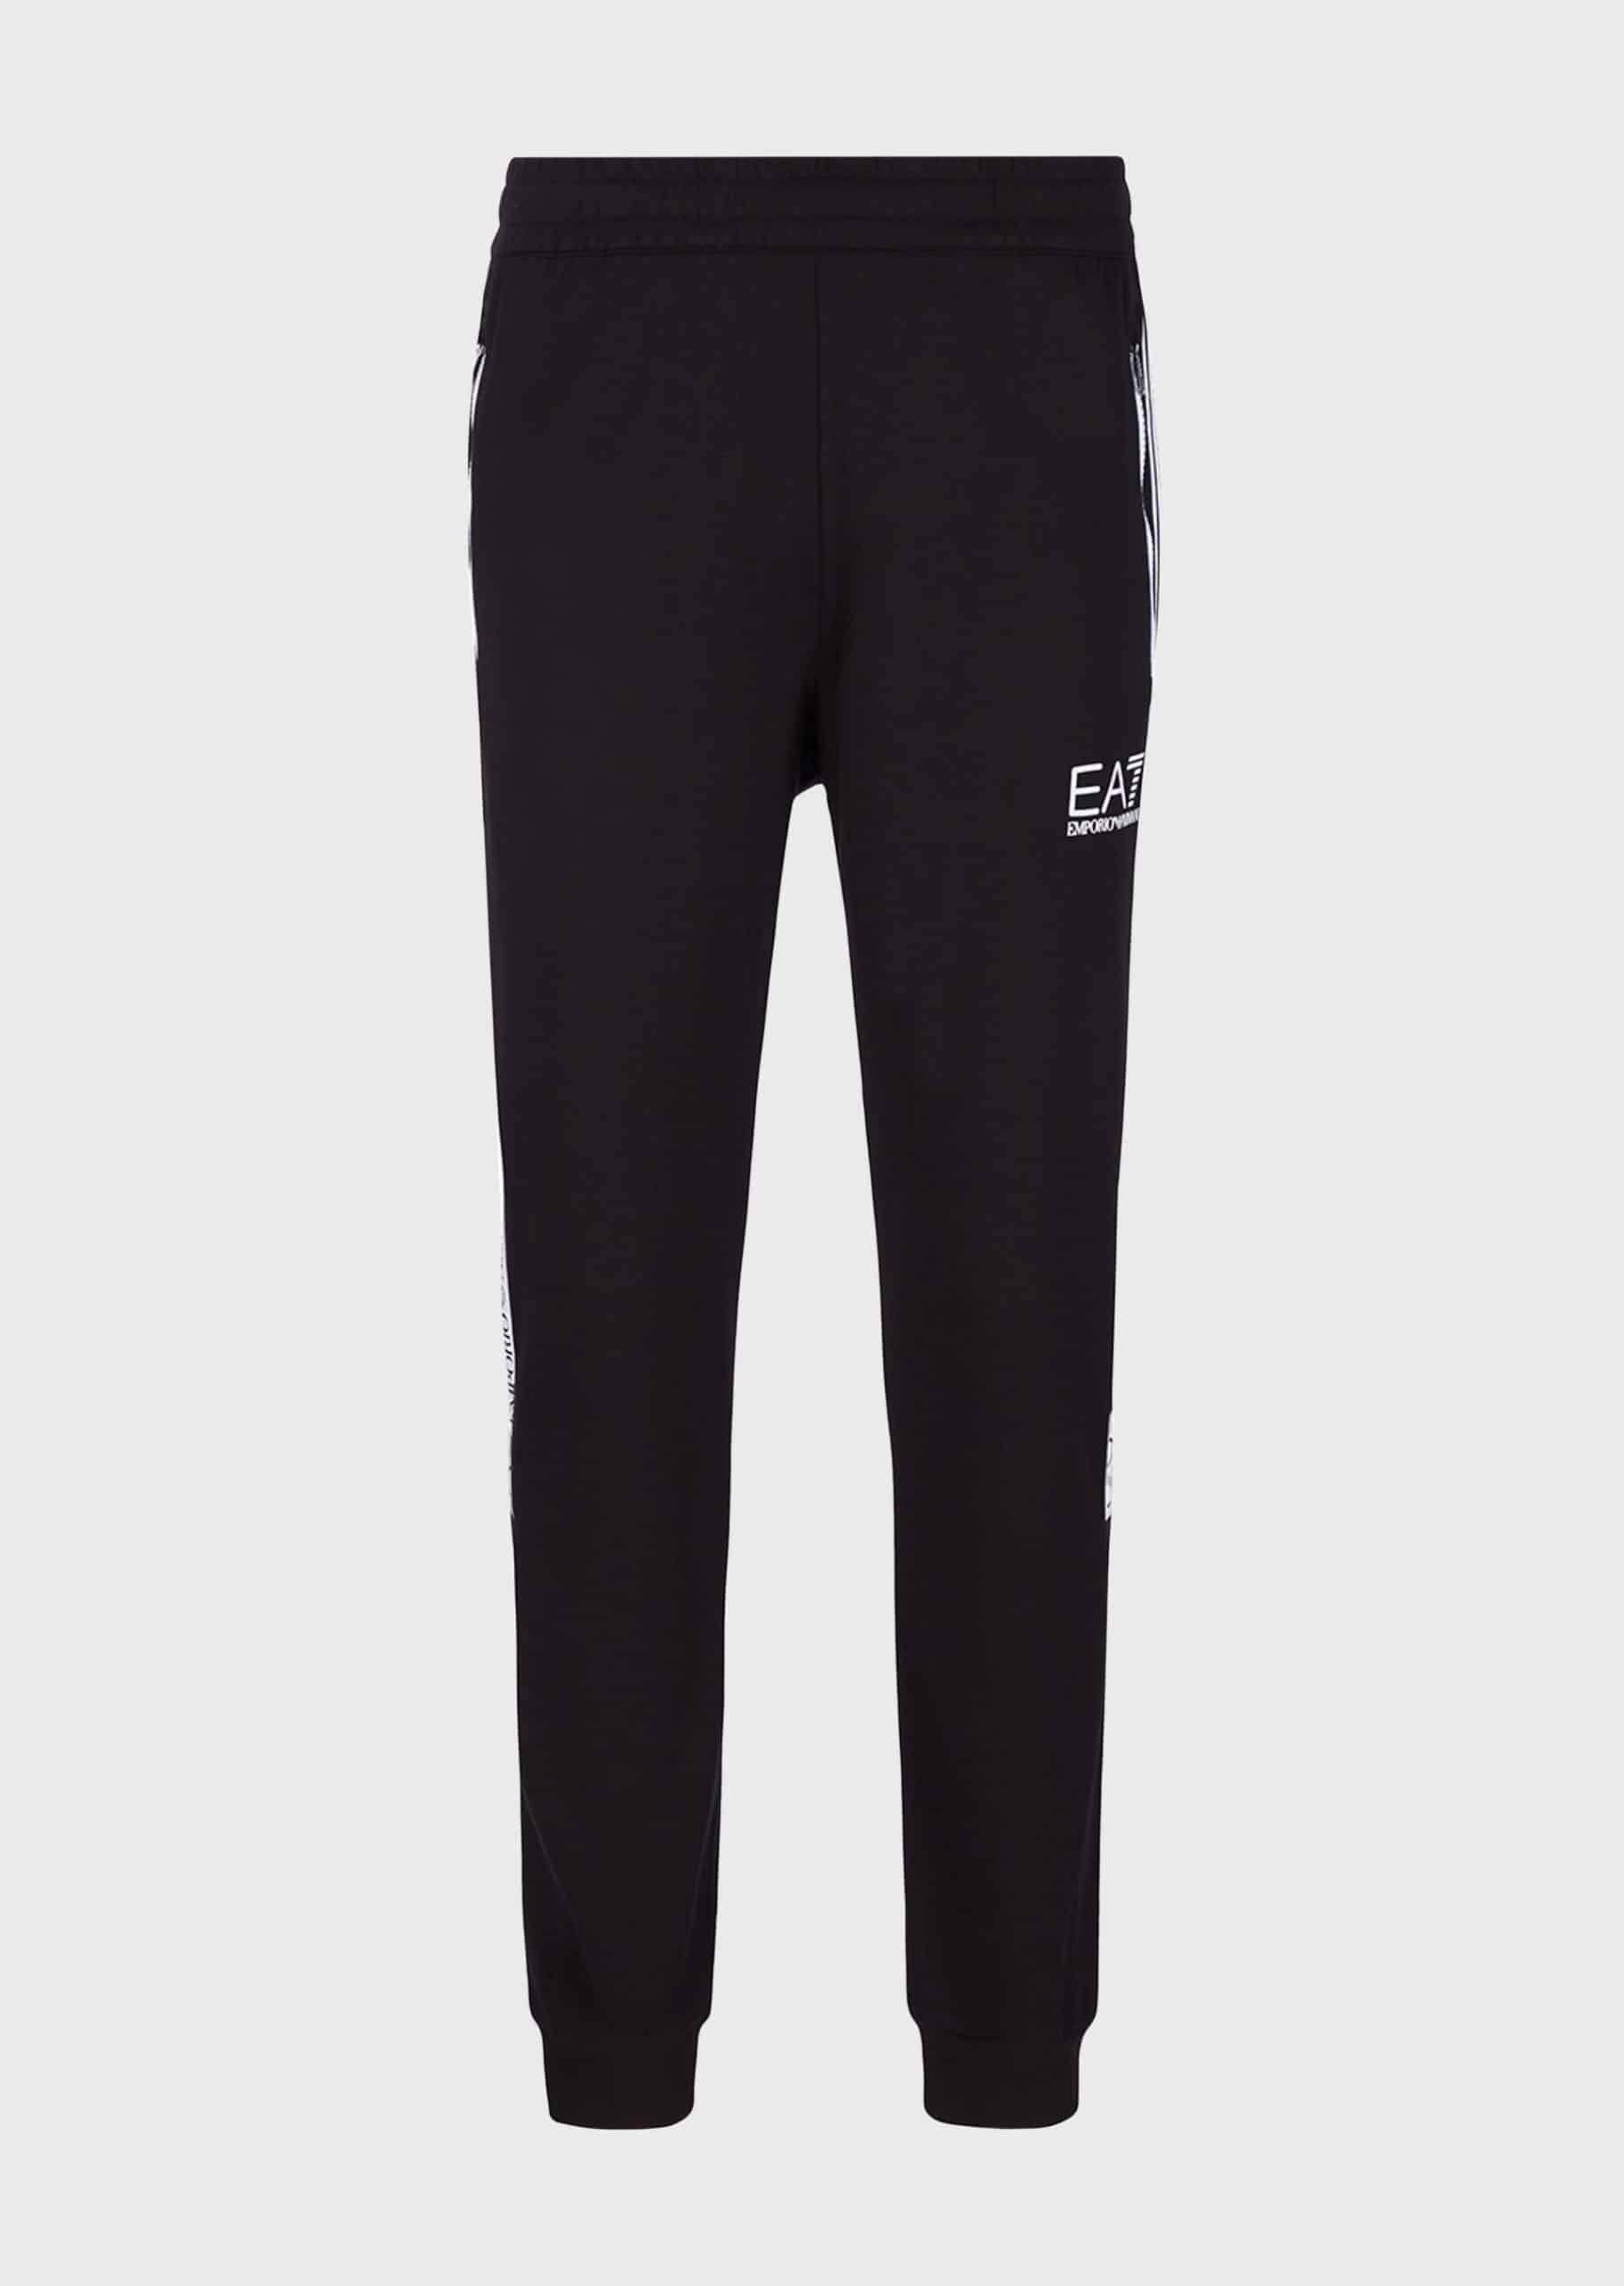 Armani EA7 Sweatpants With Logotape